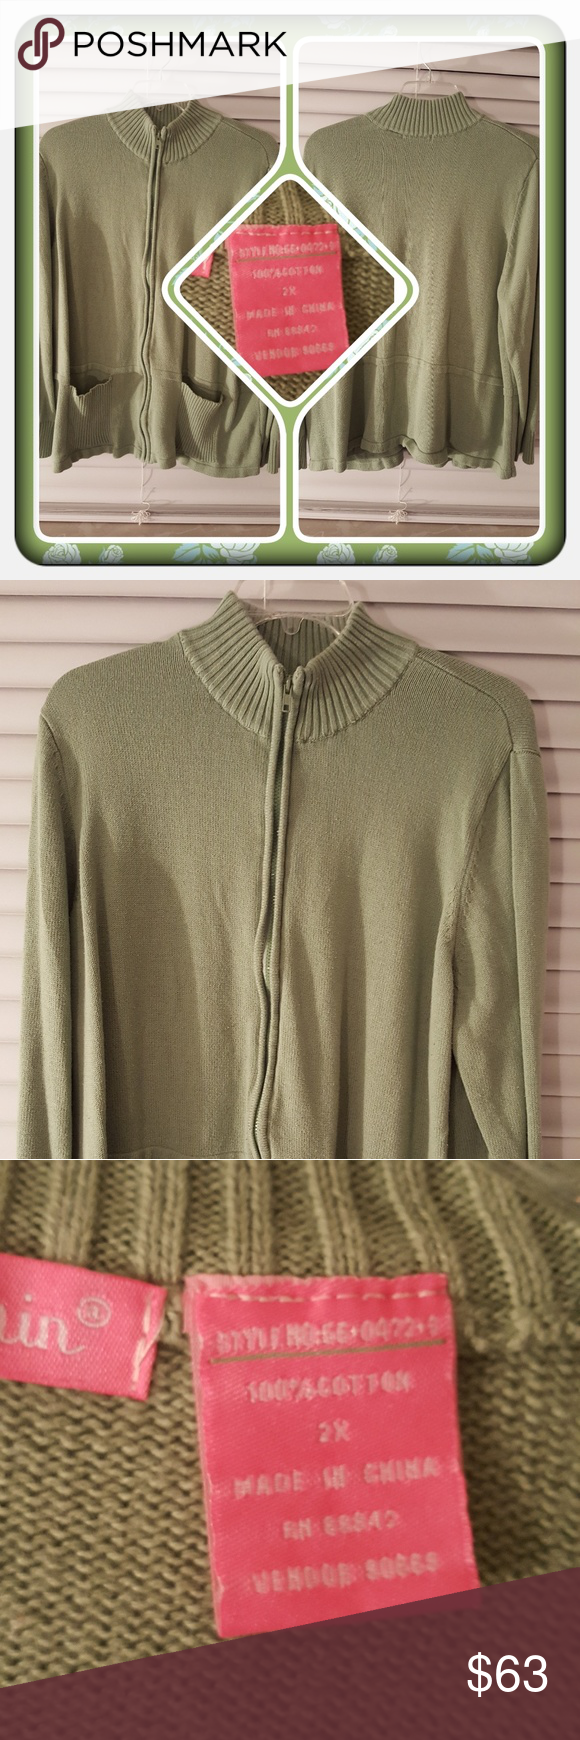 ❤ Woman's Light Green Cardigan ❤ | Fall winter, Layering and Finals